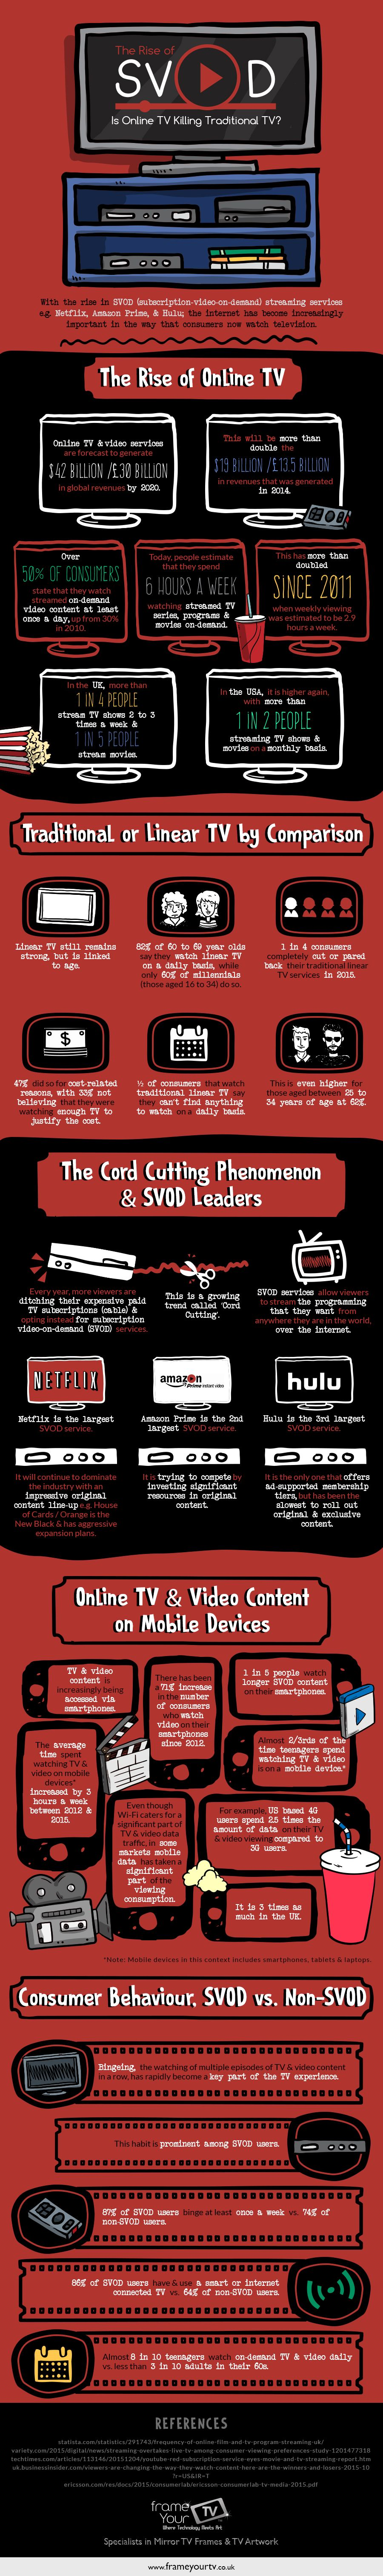 Is Online TV Killing Traditional TV? #Infographic